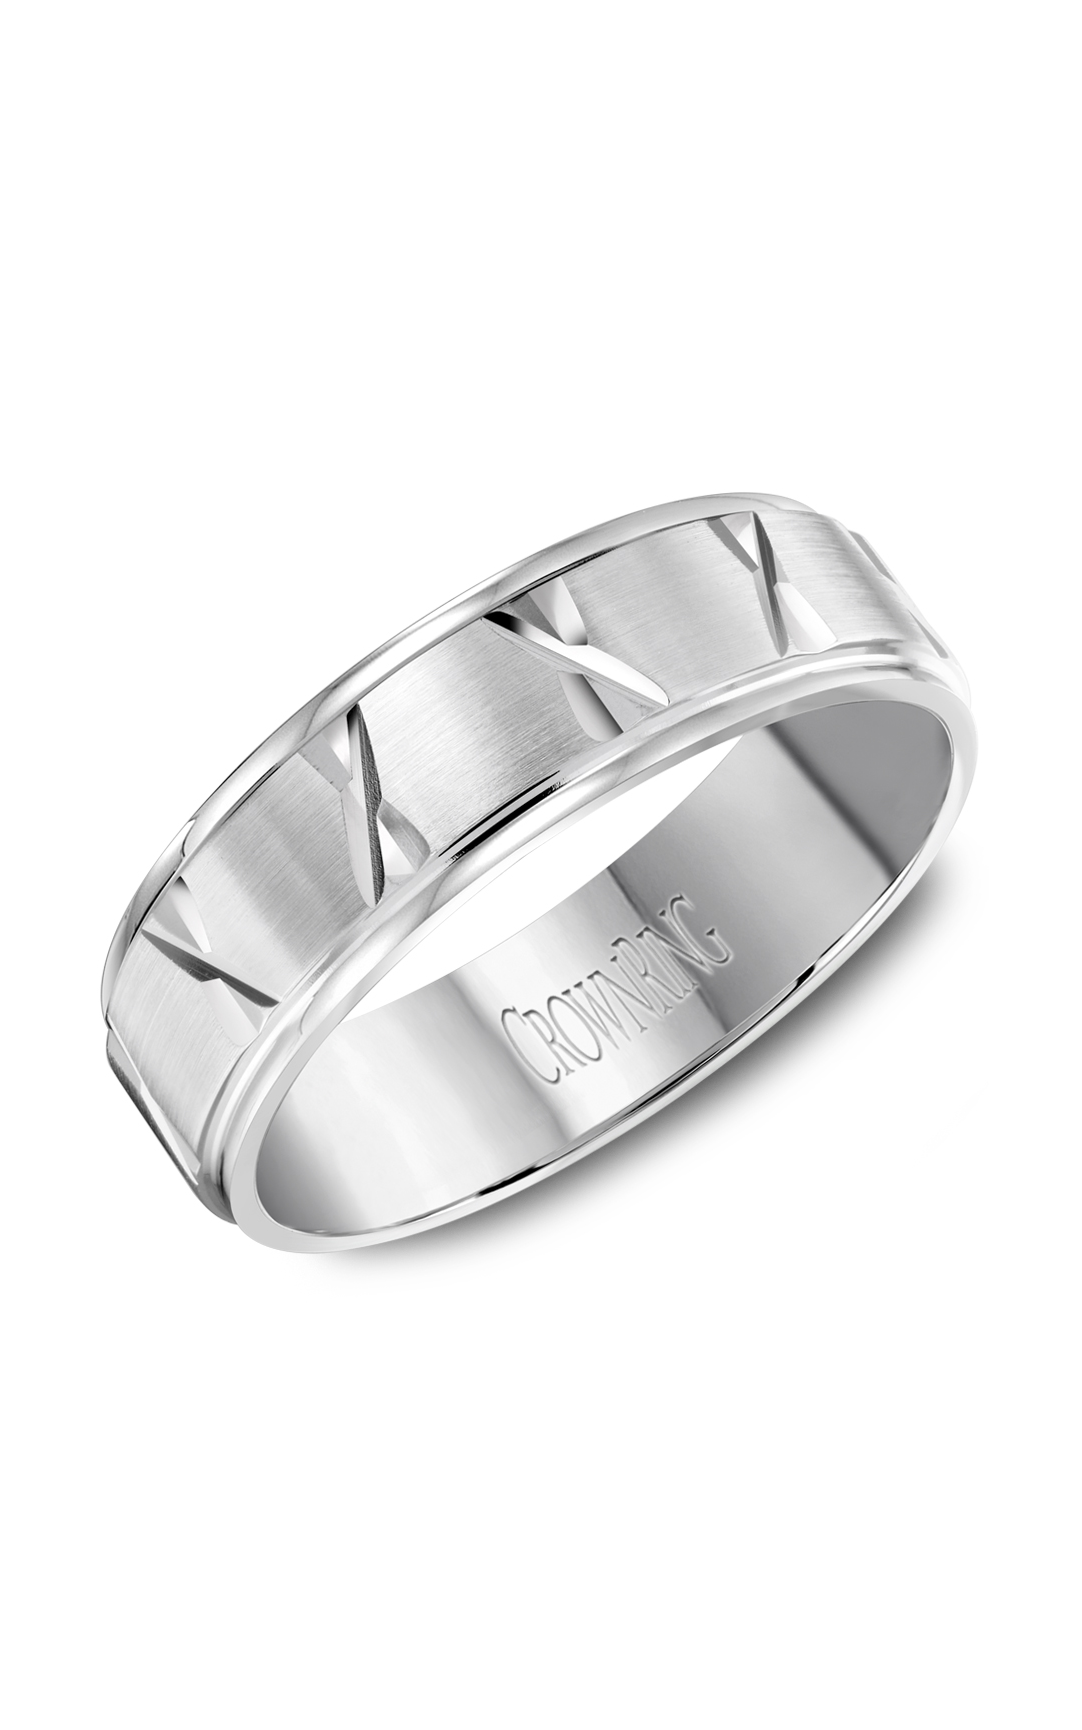 Crown Ring Men's Wedding Band WB-8062 product image